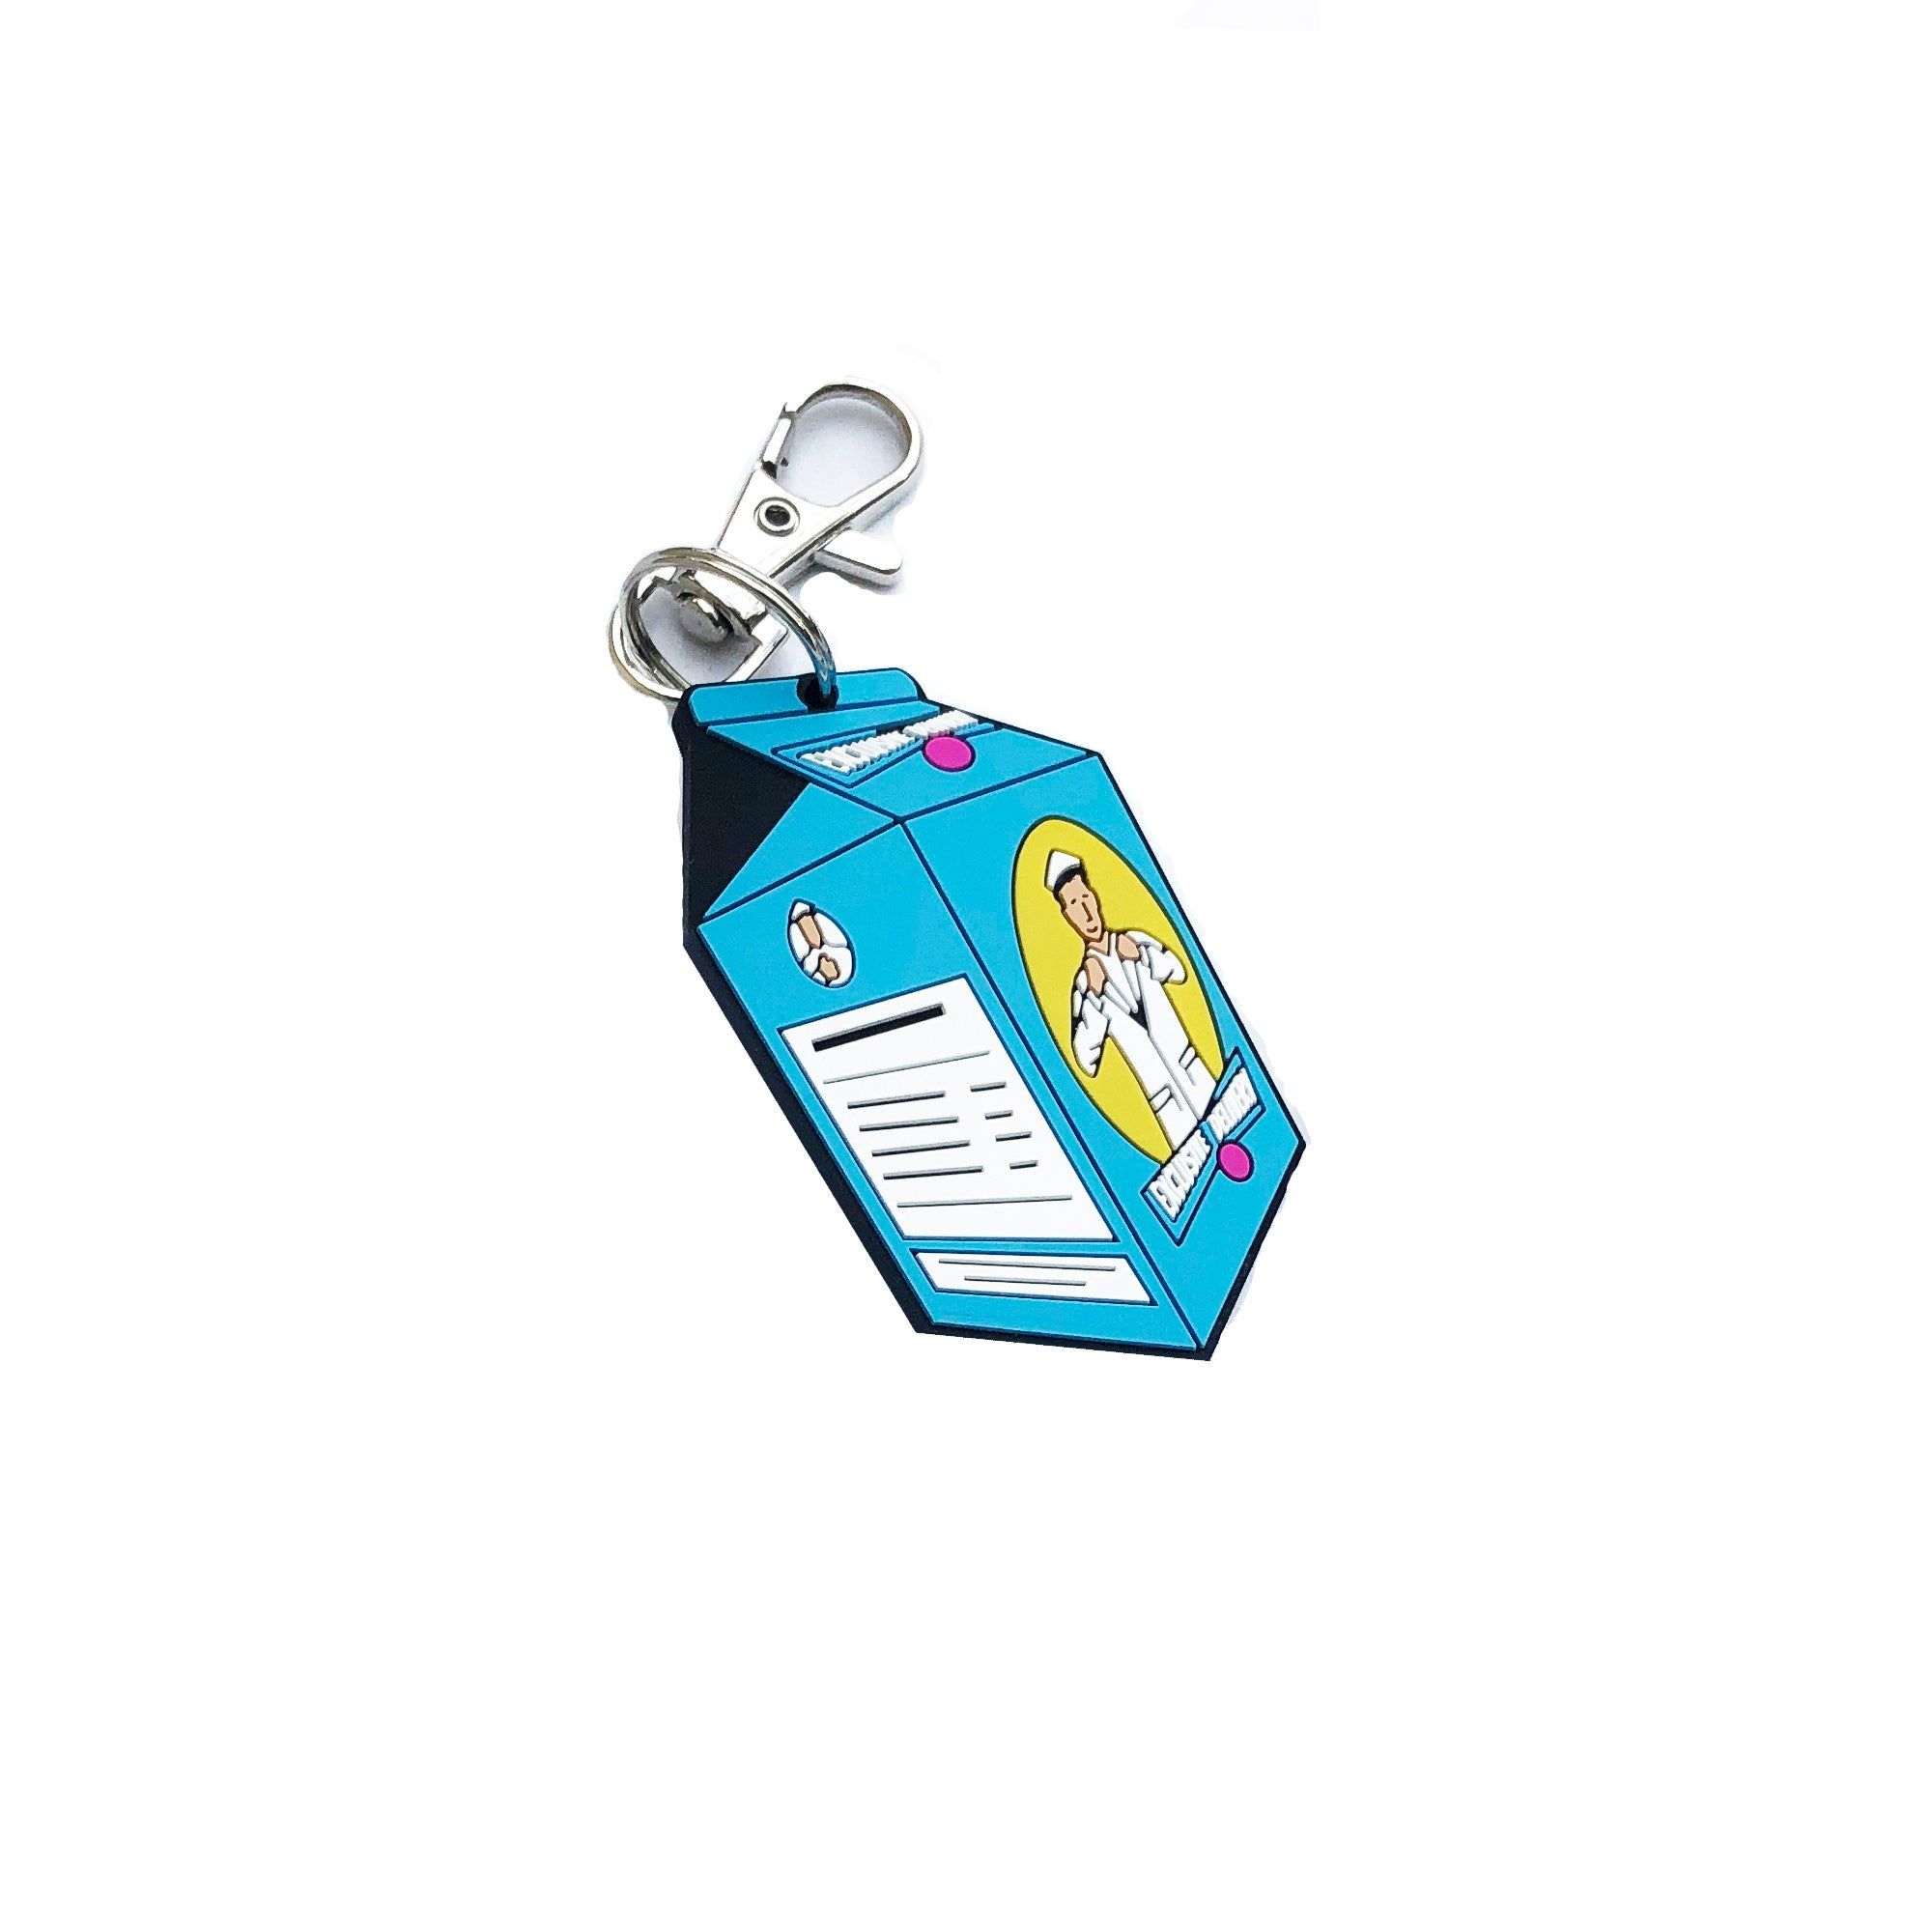 MILK CARTON KEY CHAIN